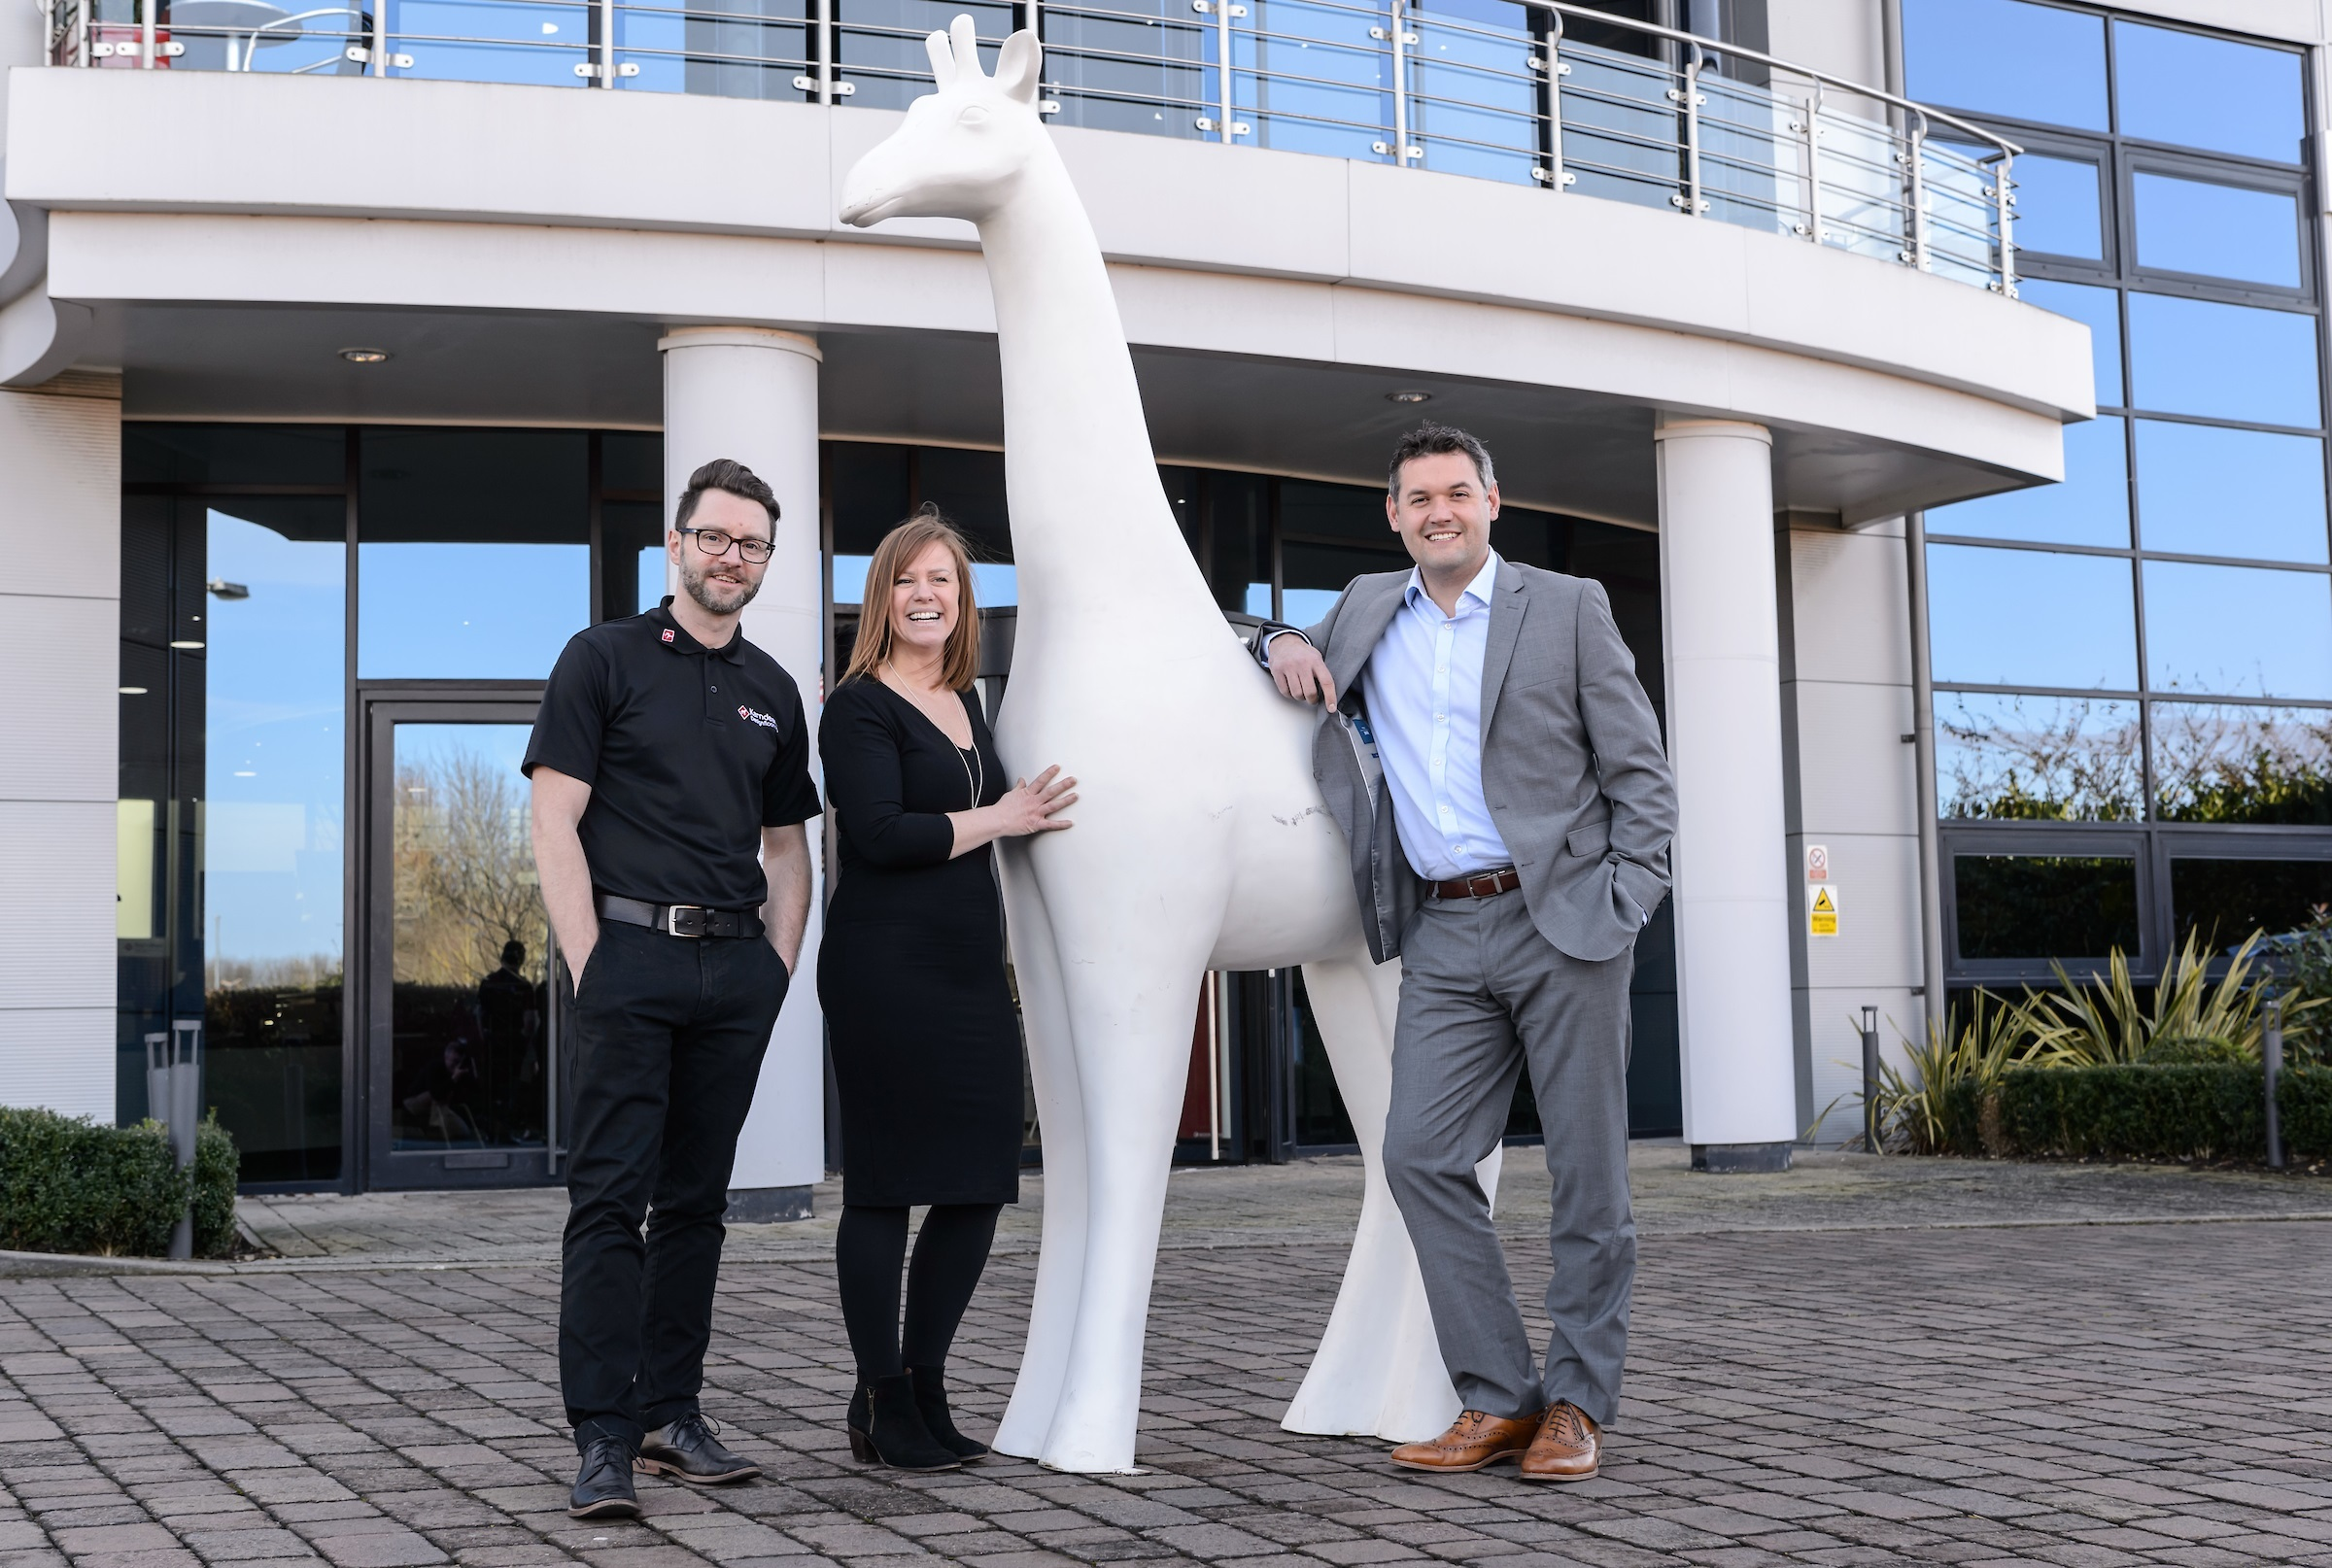 PROJECT: Jay Forrester, showroom manager of Karndean Designflooring, Sara Matthews, Worcester Stands Tall project manager and Paul Barratt, managing director of Karndean Designflooring